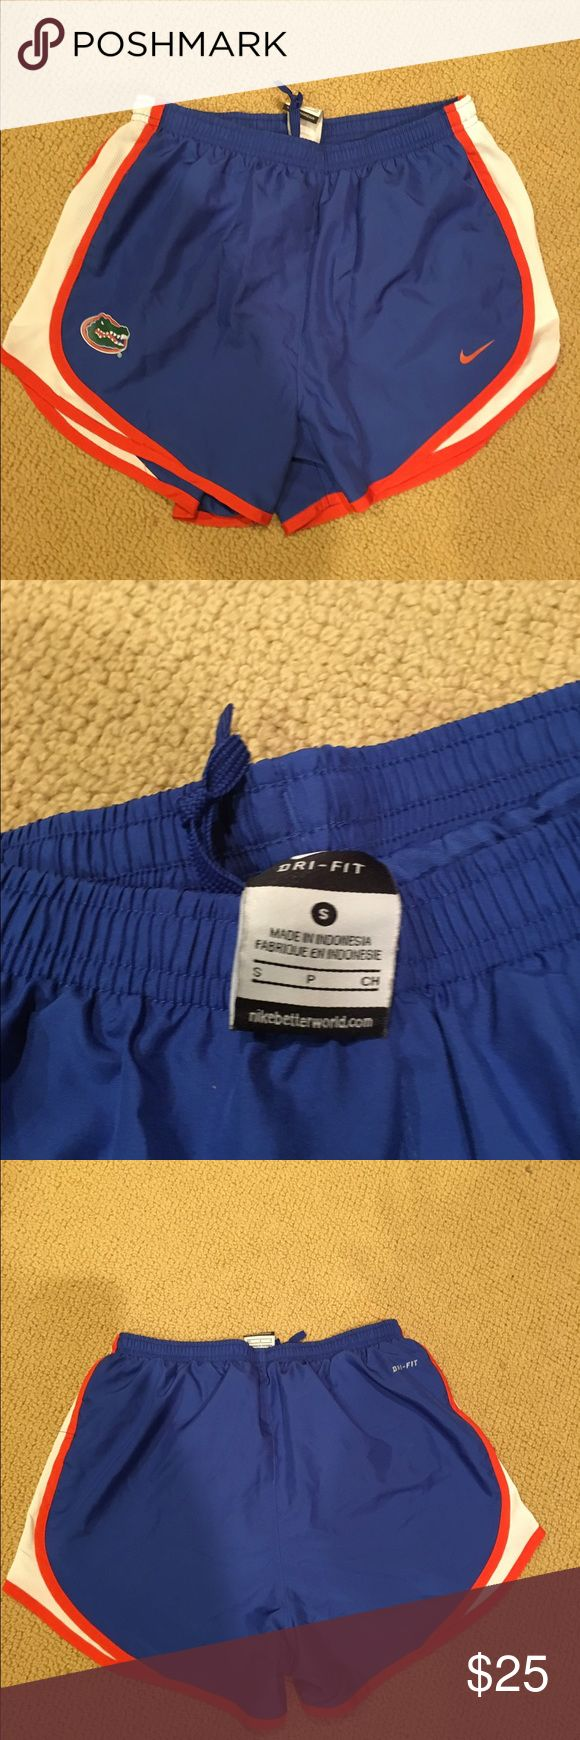 Nike Gator Dri Fit Shorts Nike Gator Dri Fit Shorts. These UF gator Nike Dri Fit shorts. Have built in liner. In excellent condition. Size small Nike Shorts